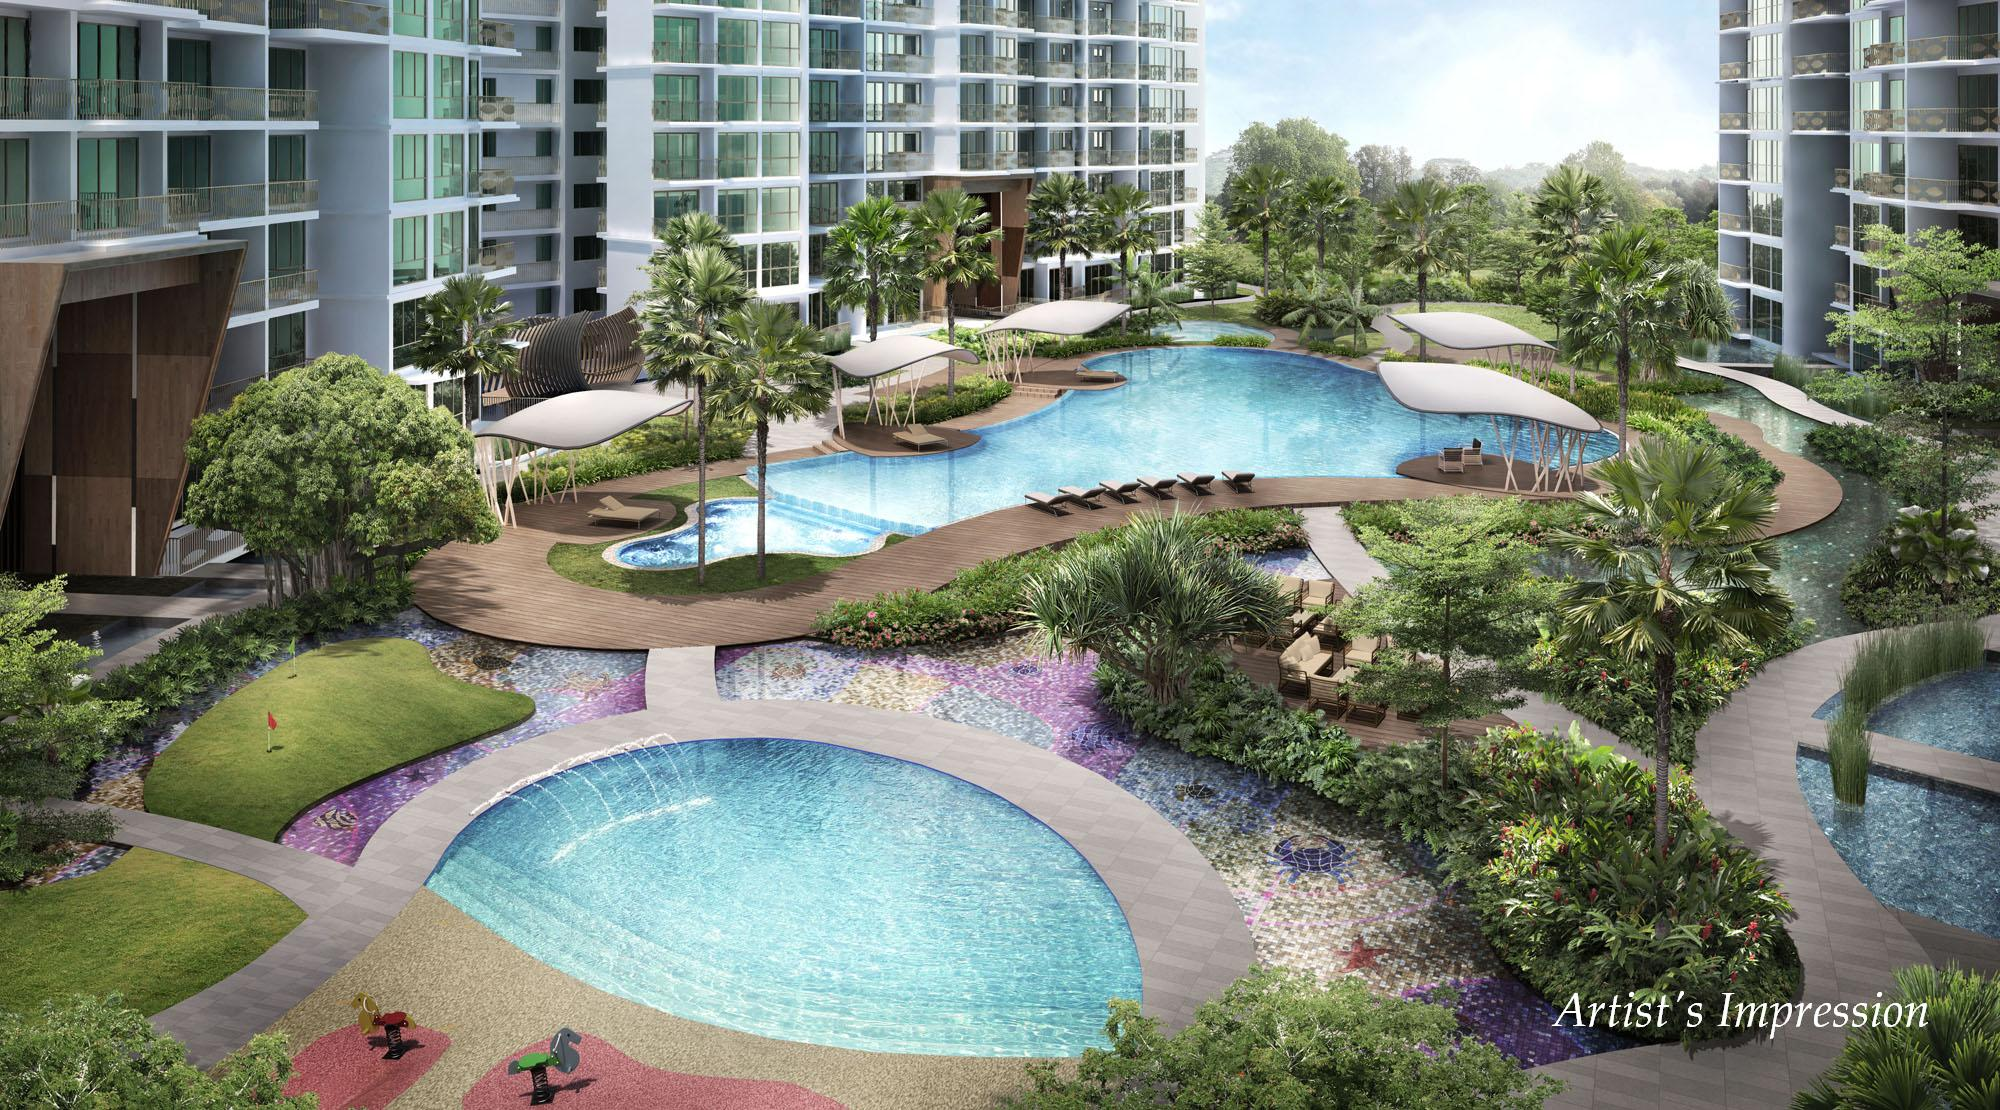 Ripple Bay Condo Pools & Water Features